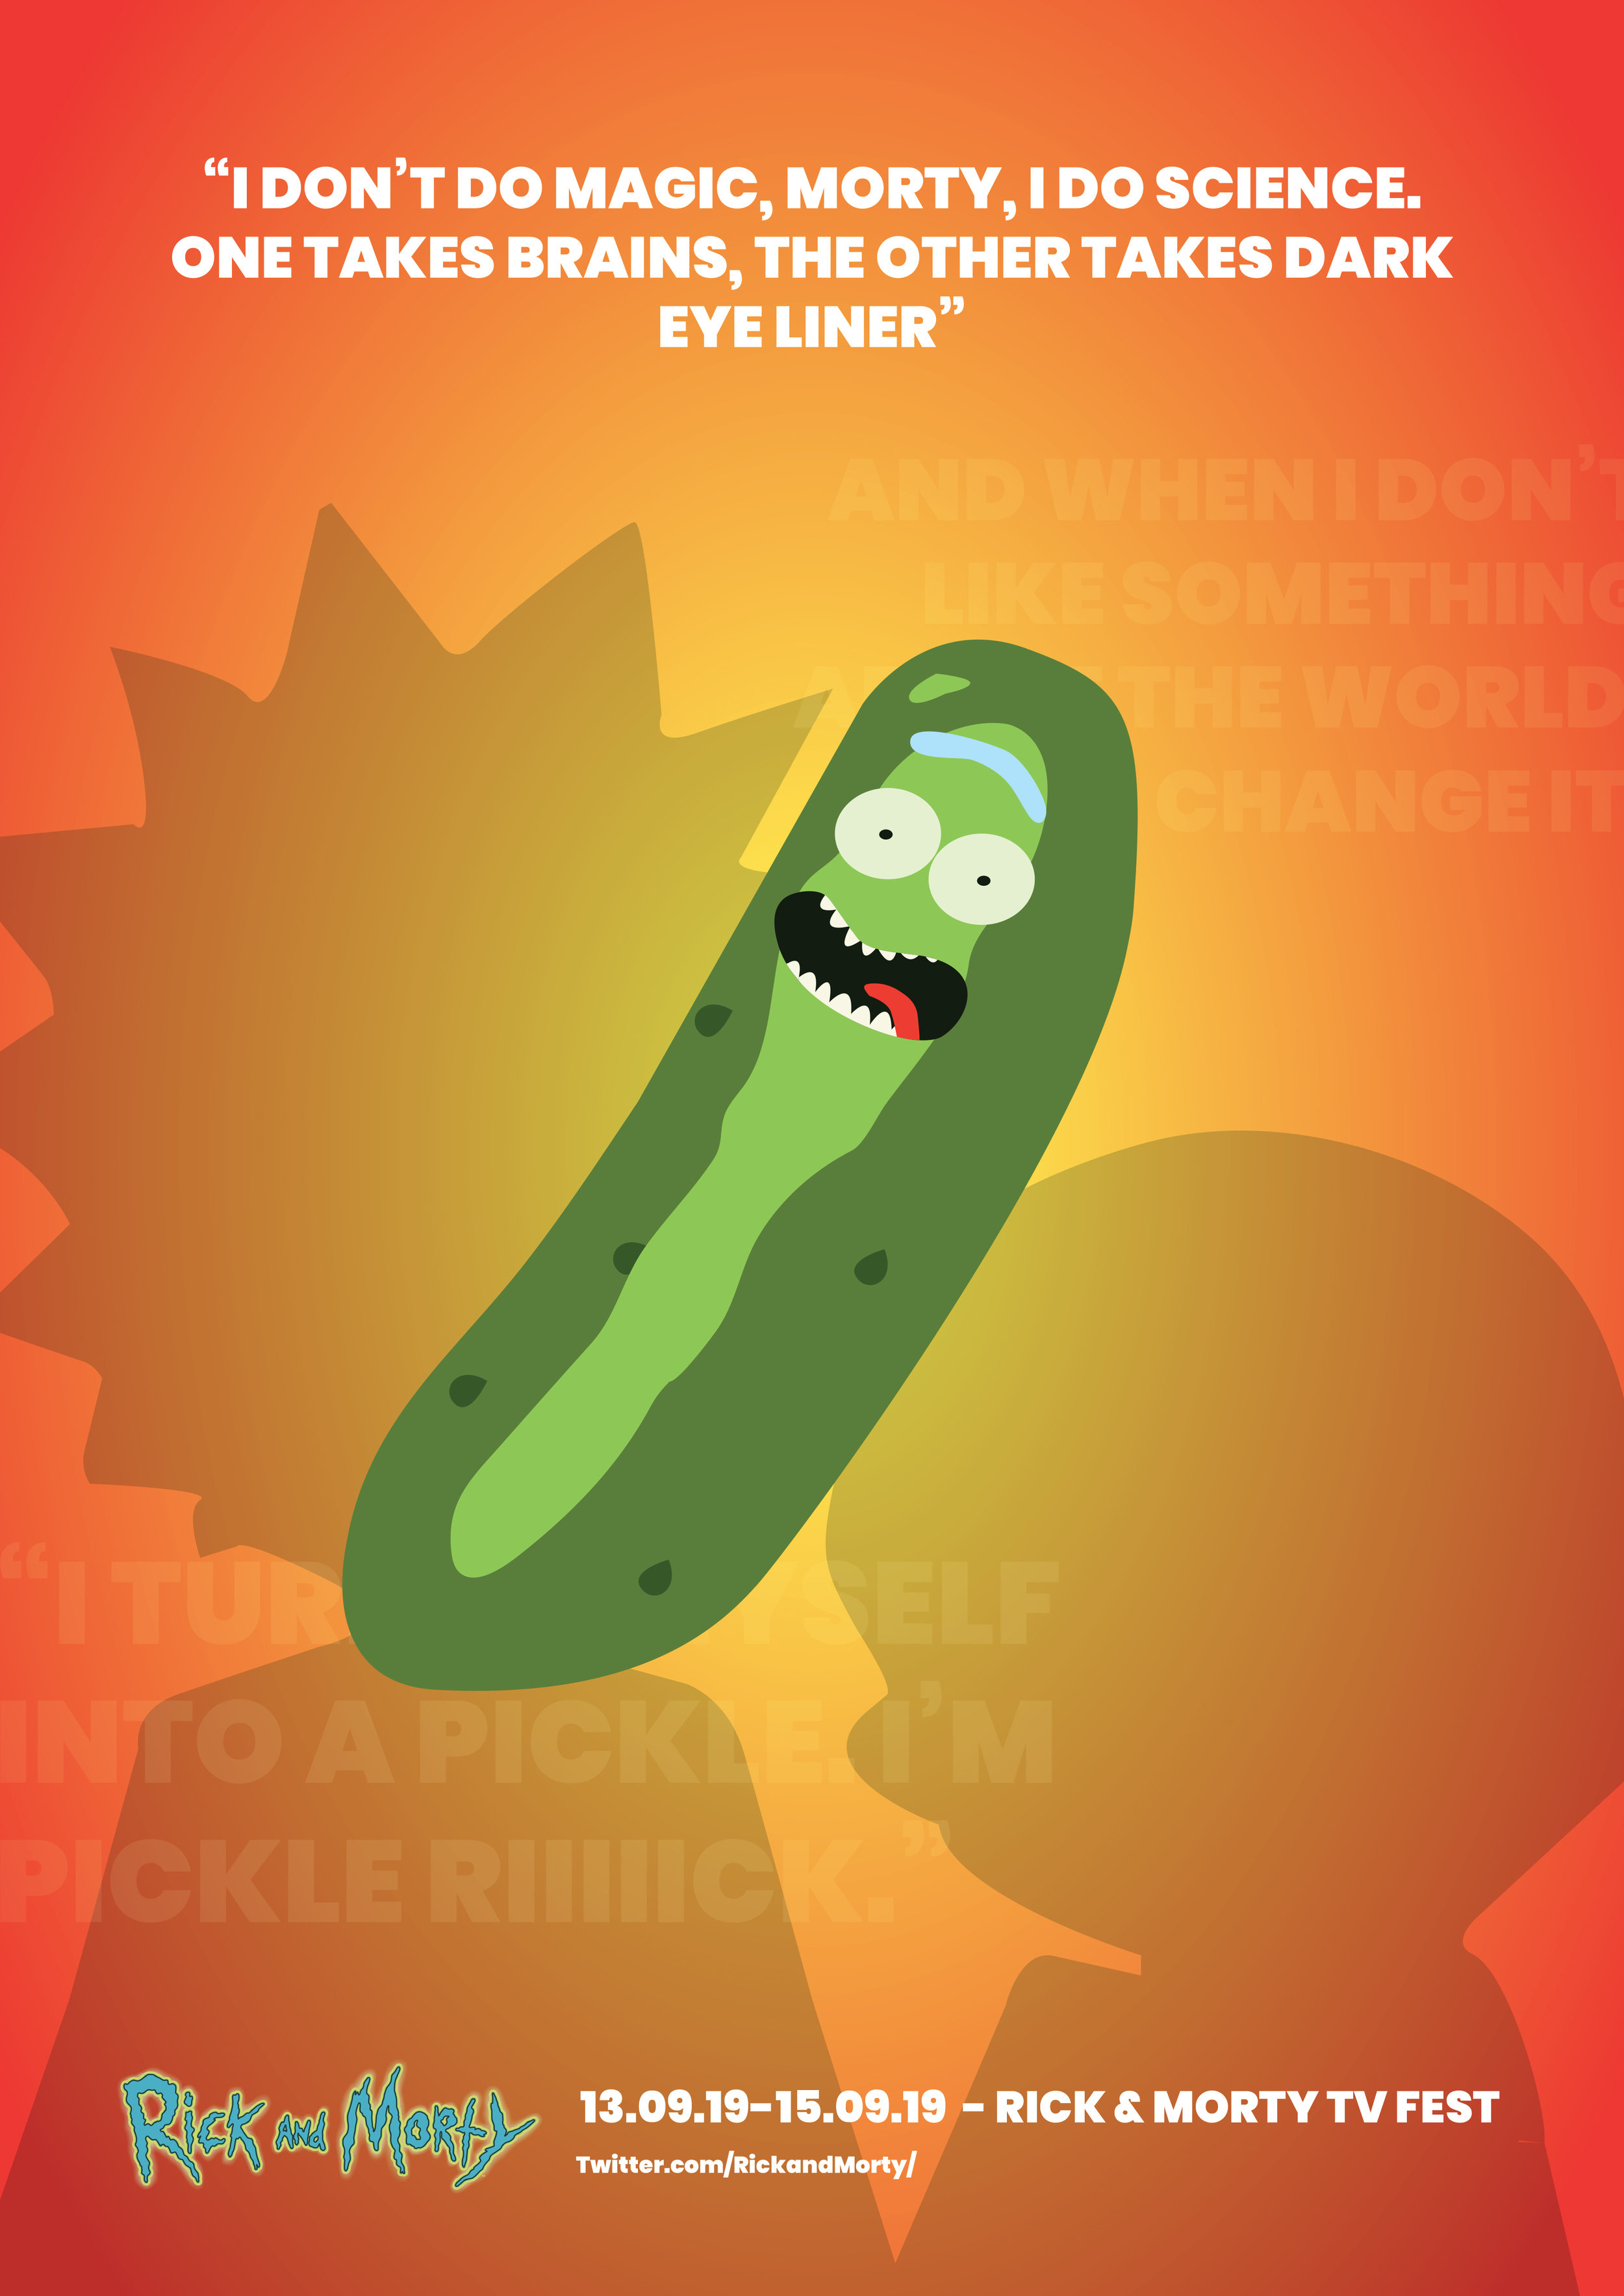 Rick and morty pickle rick poster